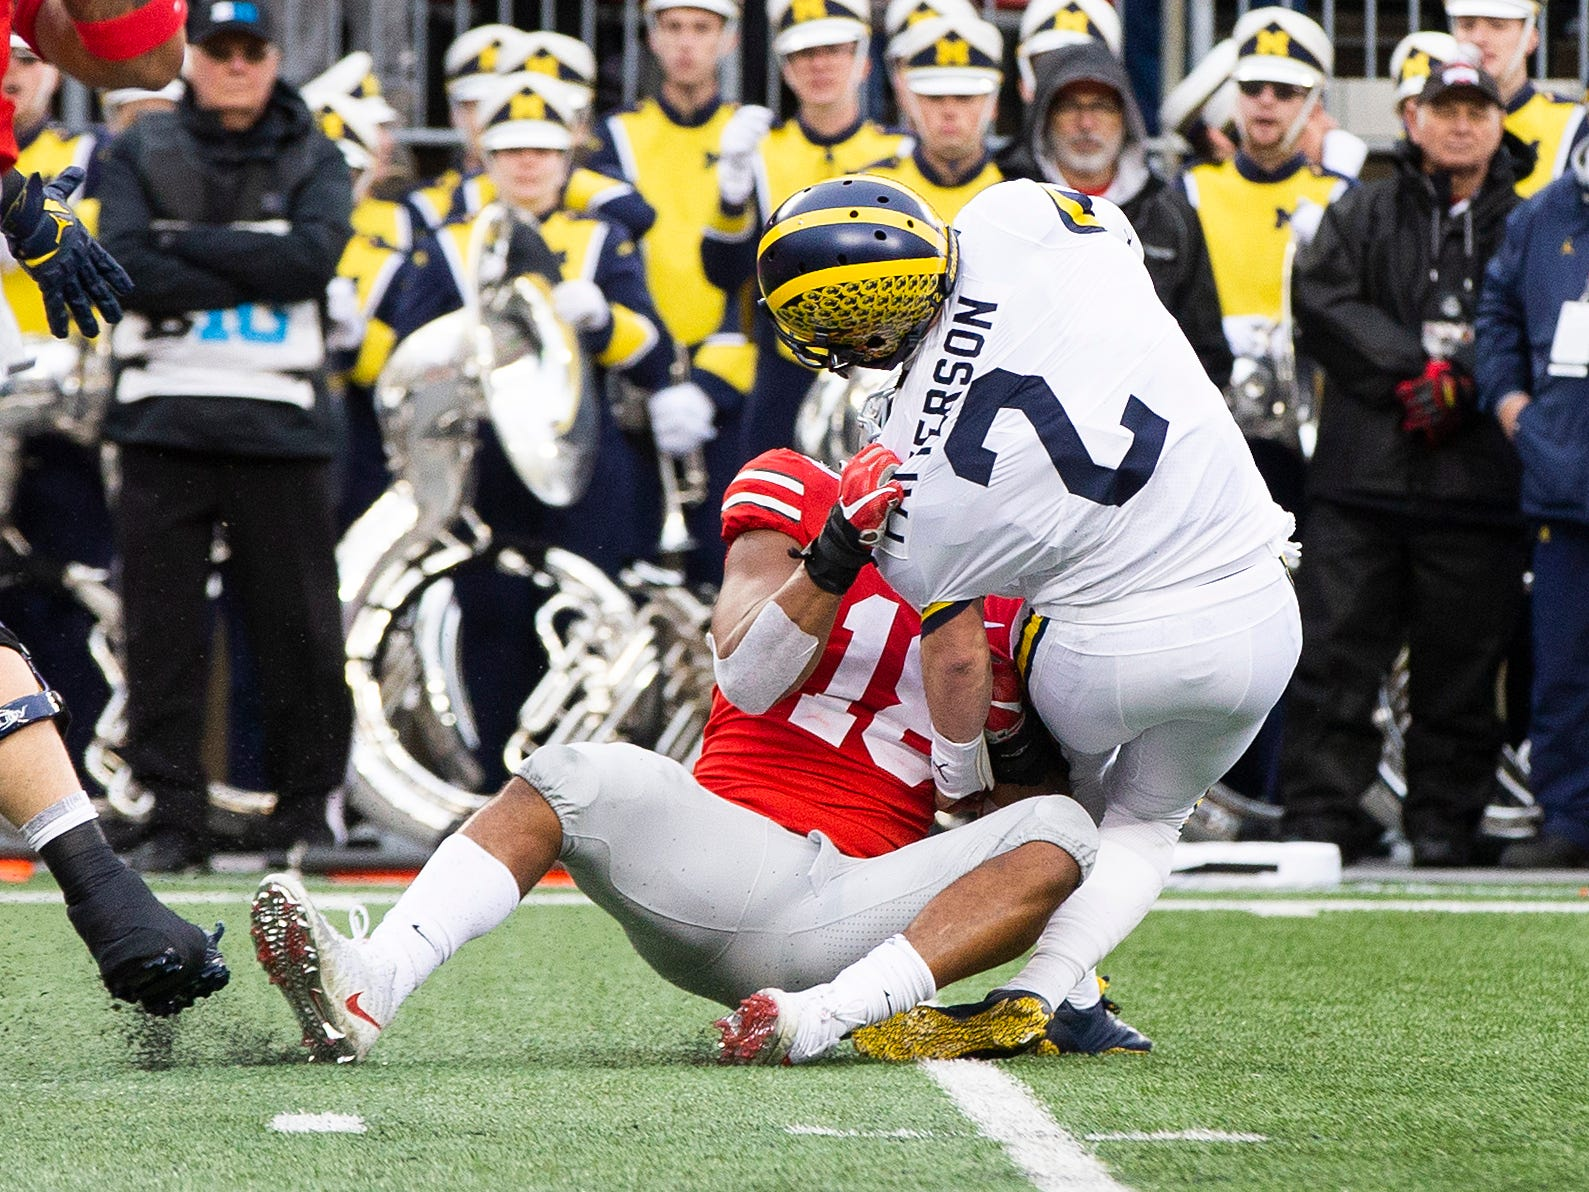 Ohio State Buckeyes defensive end Jonathon Cooper (18) sacks Michigan Wolverines quarterback Shea Patterson (2) in the first half at Ohio Stadium.